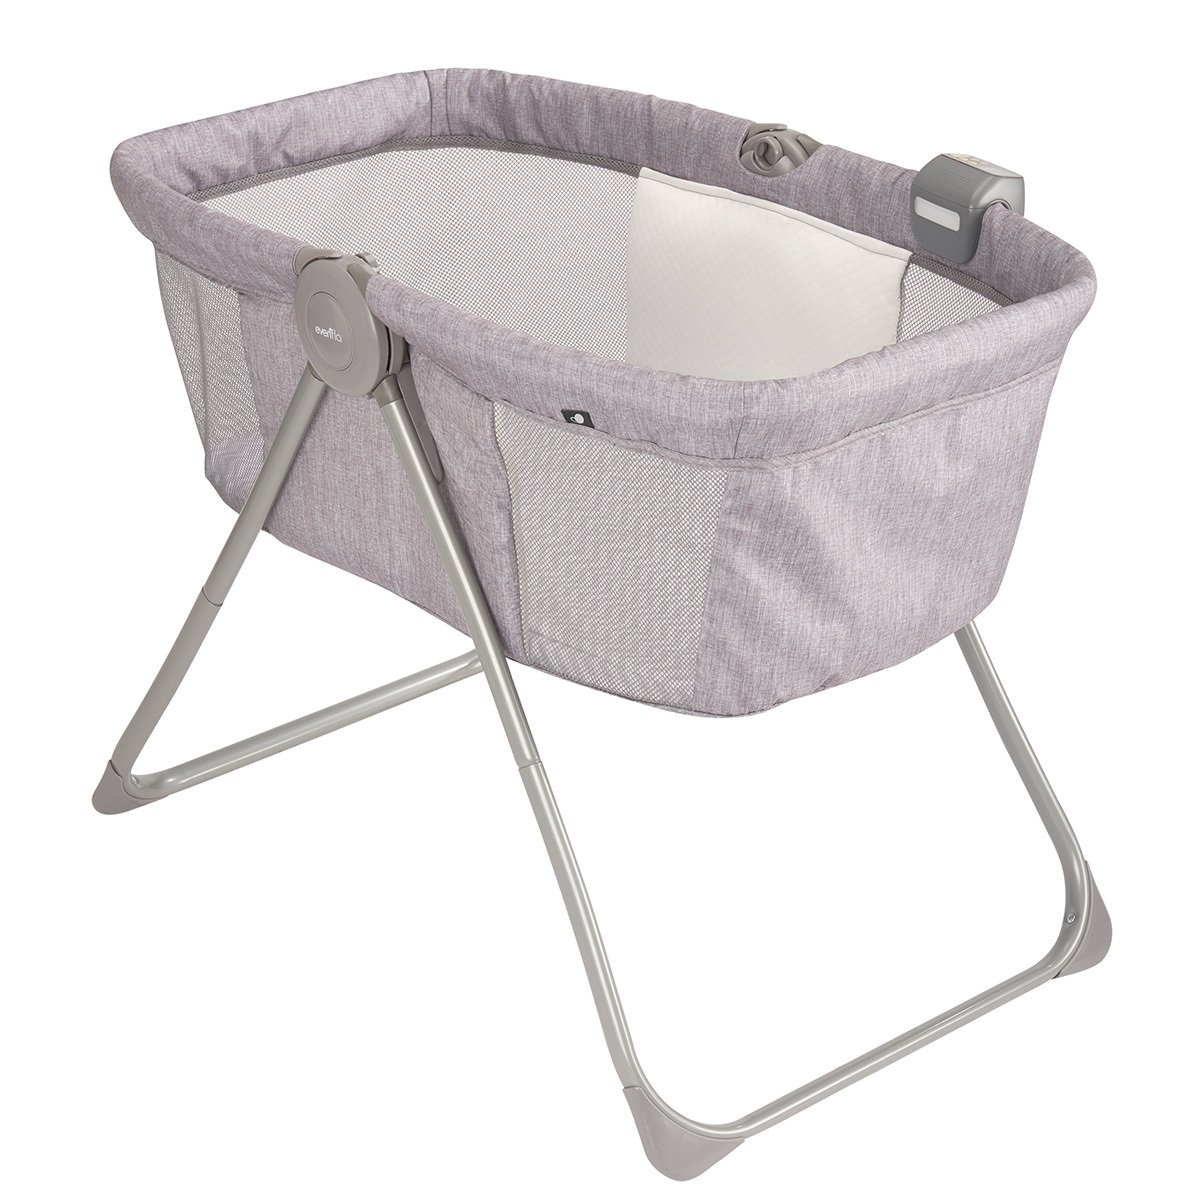 The Evenflo Loft Portable Bassinet